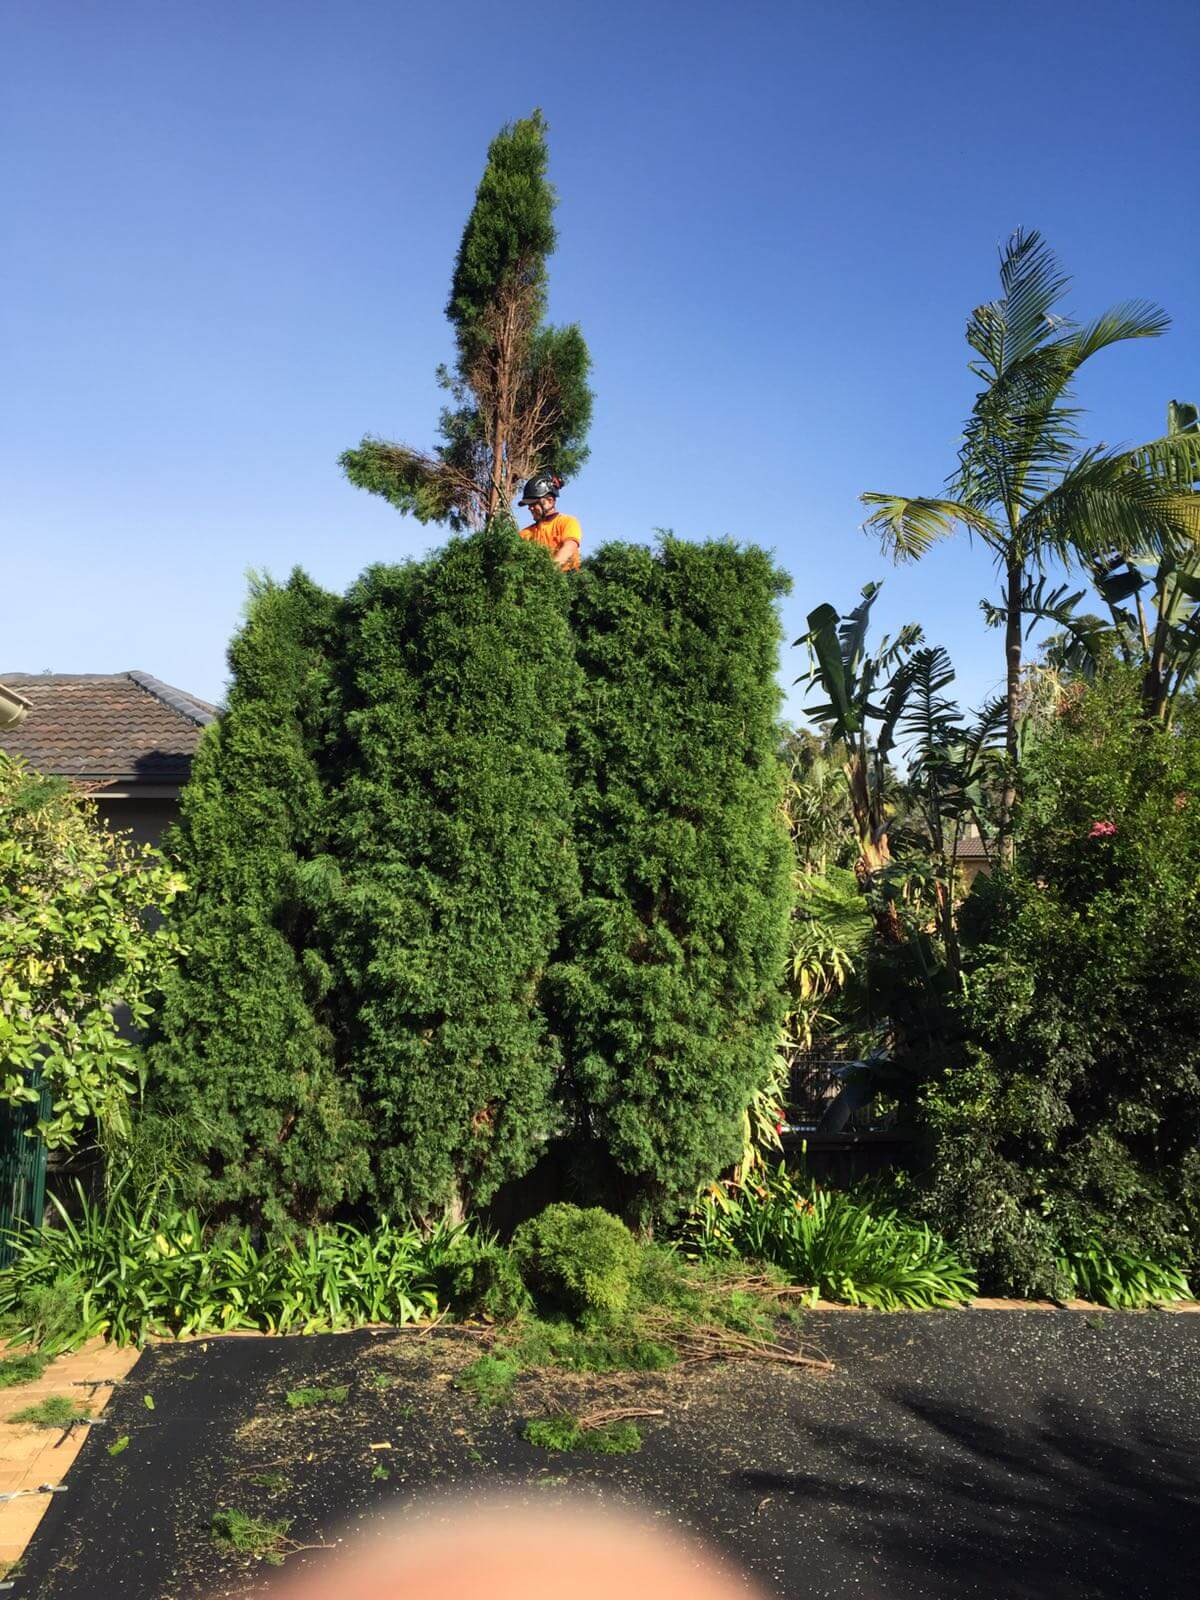 local tree trimming services Edgecliff